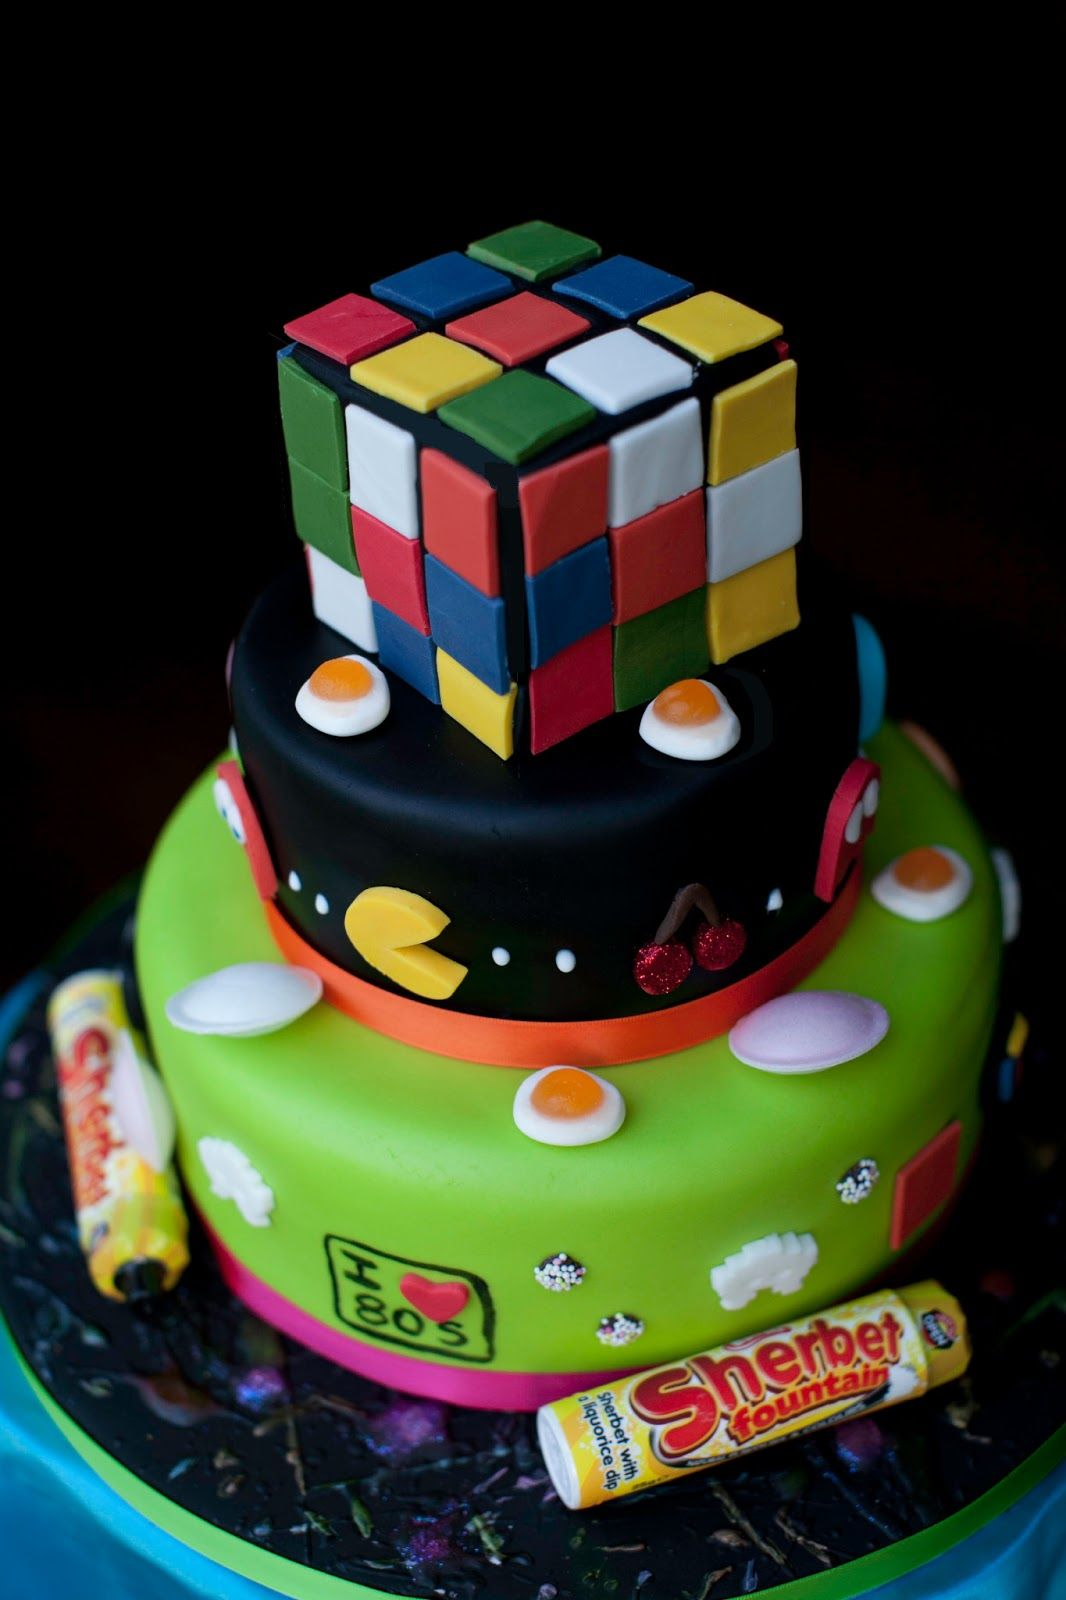 80s Inspired Birthday Cake